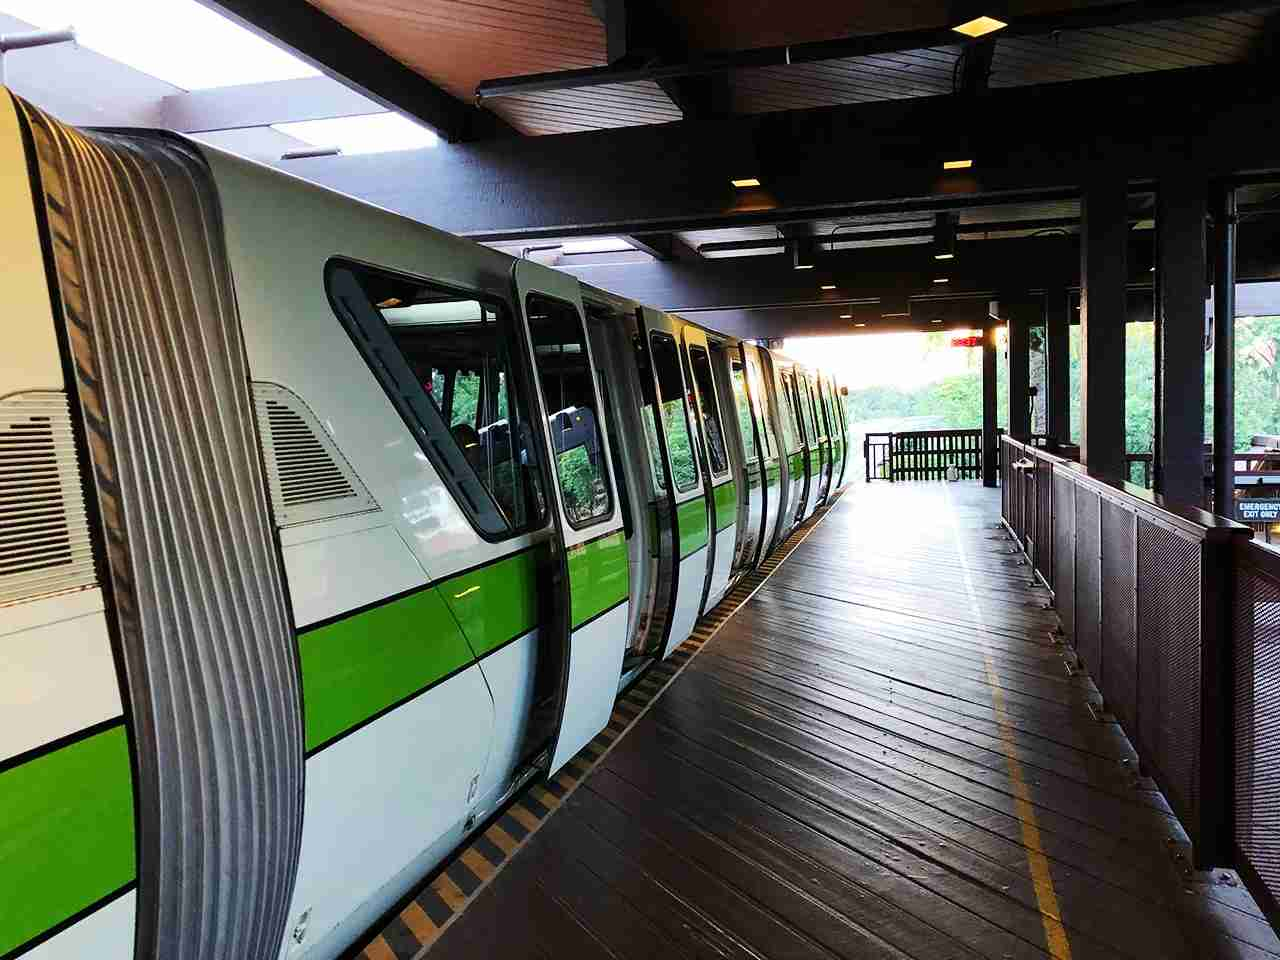 Quick monorail stop at the Polynesian heading to the Magic Kingdom